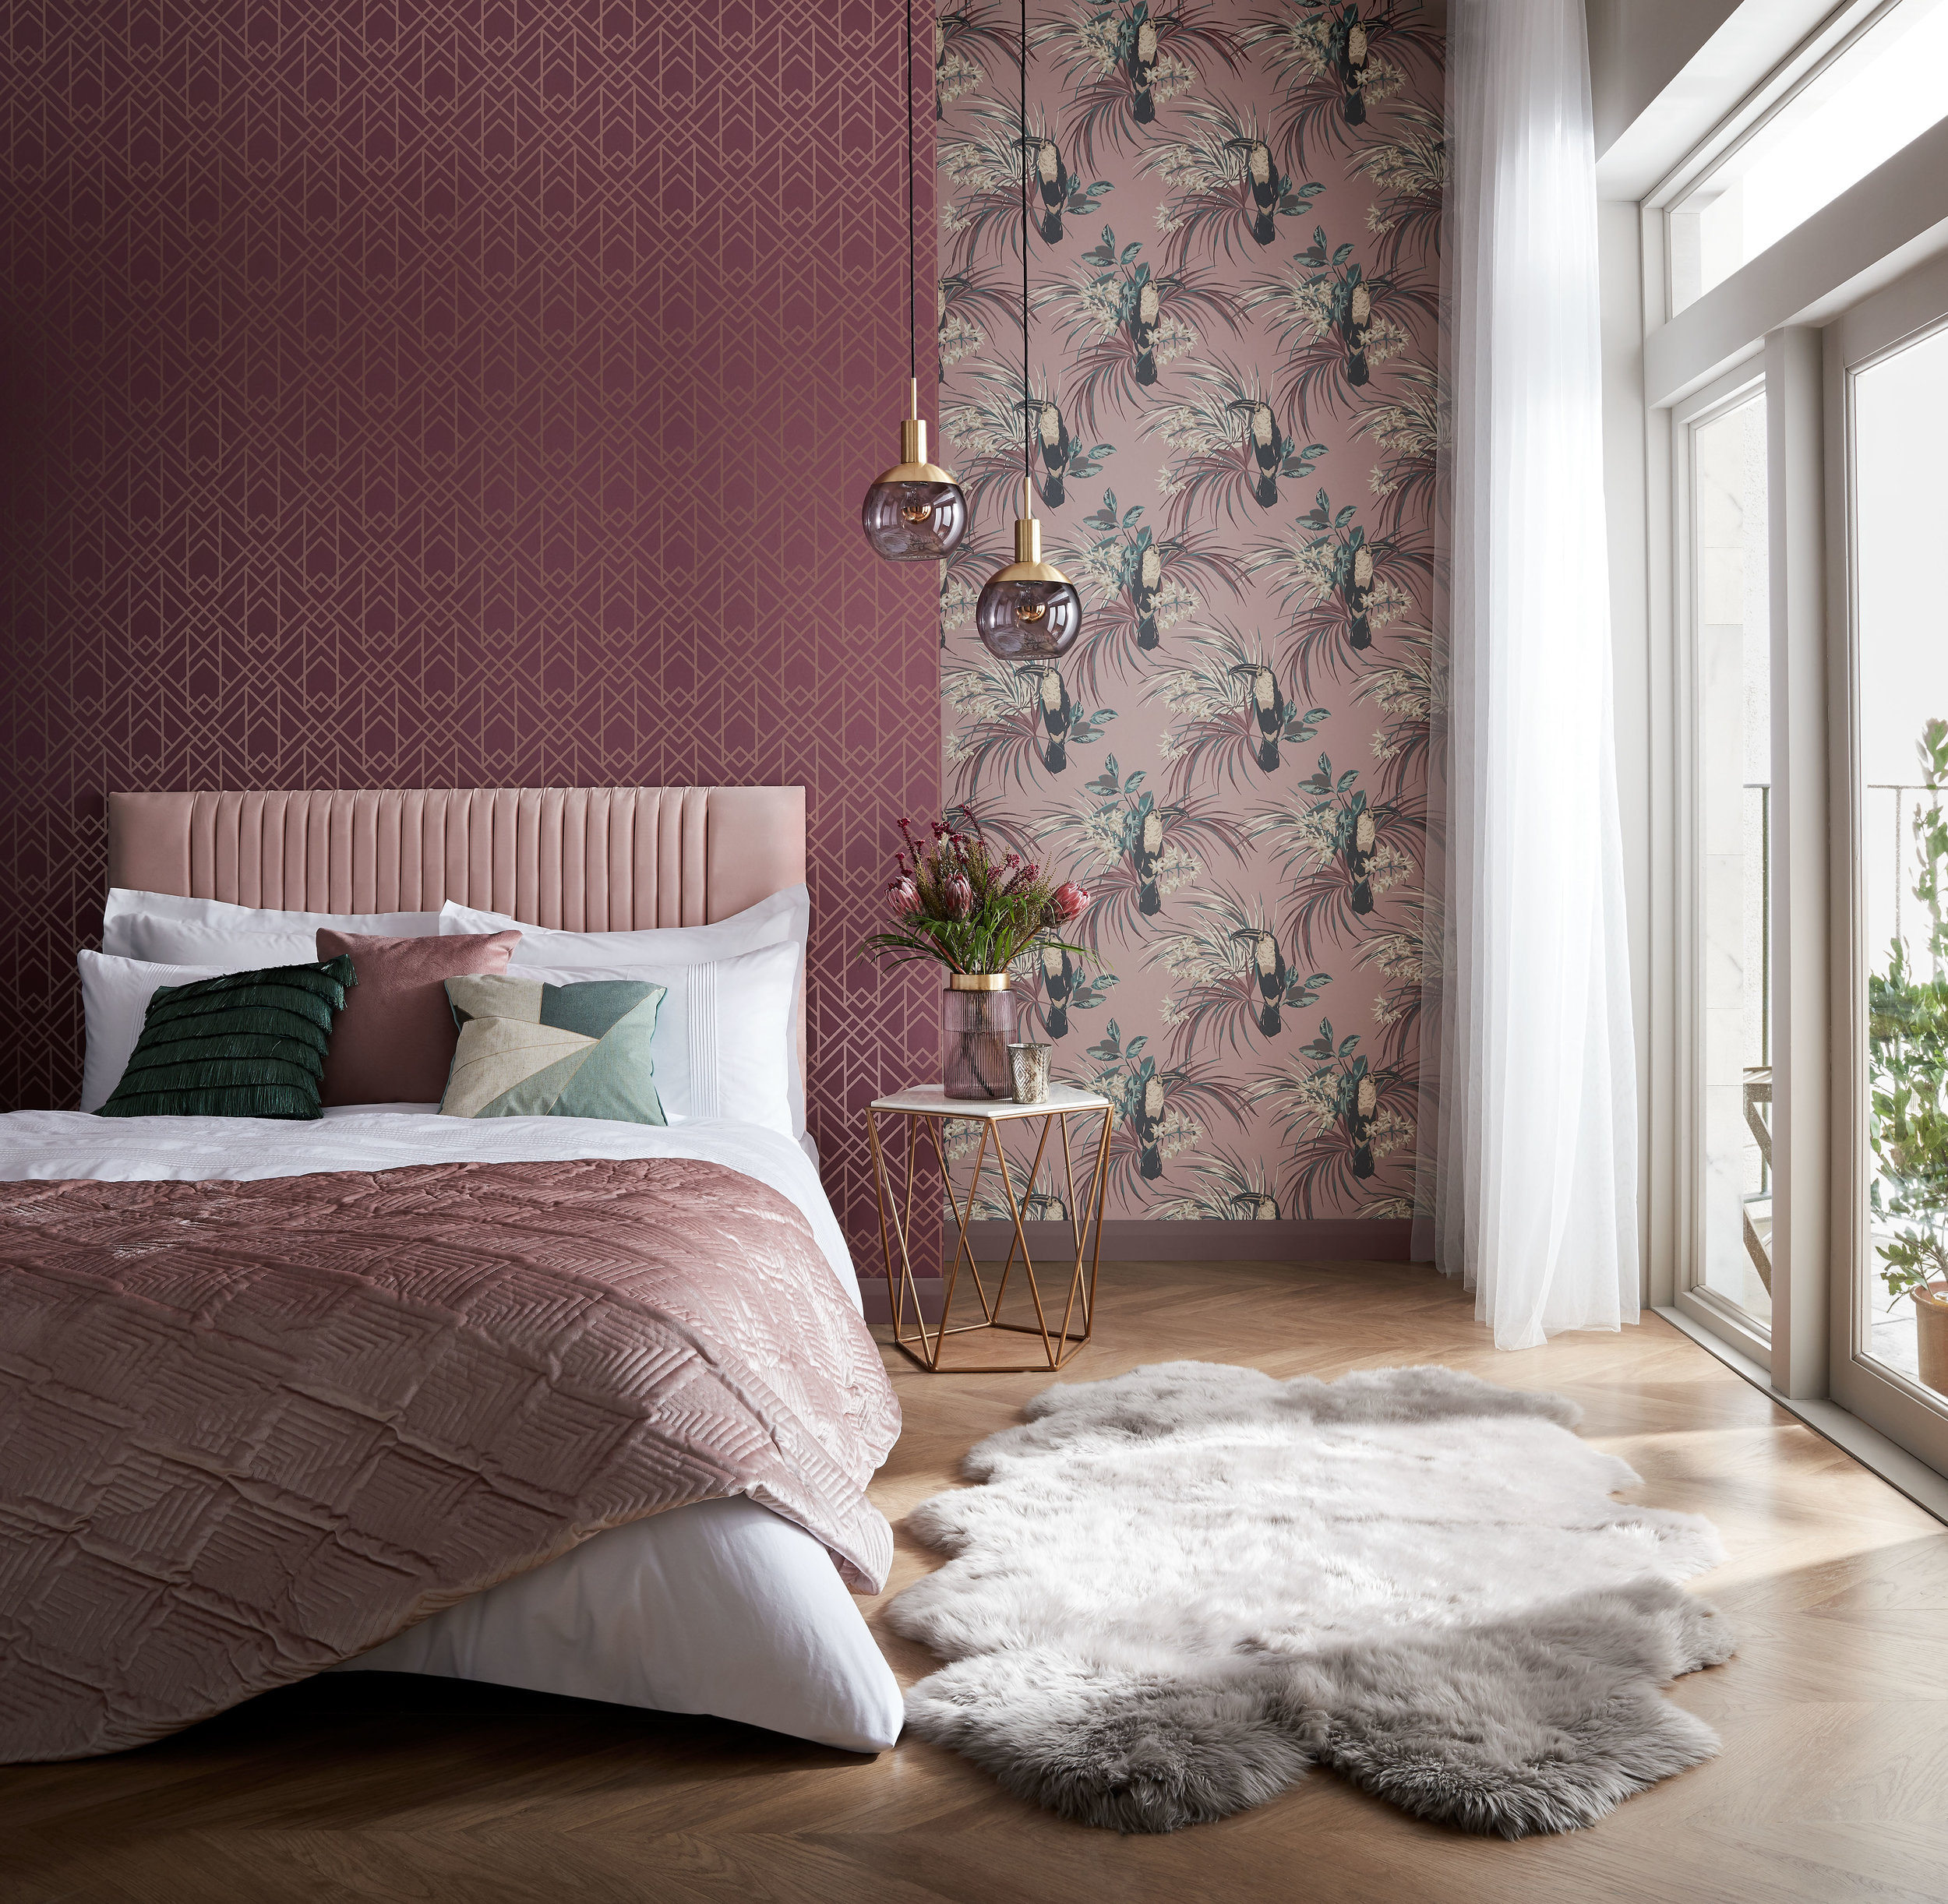 1838 Elodie Collection - Lead Image - Metro Cassis and Le Toucan Rose.jpg